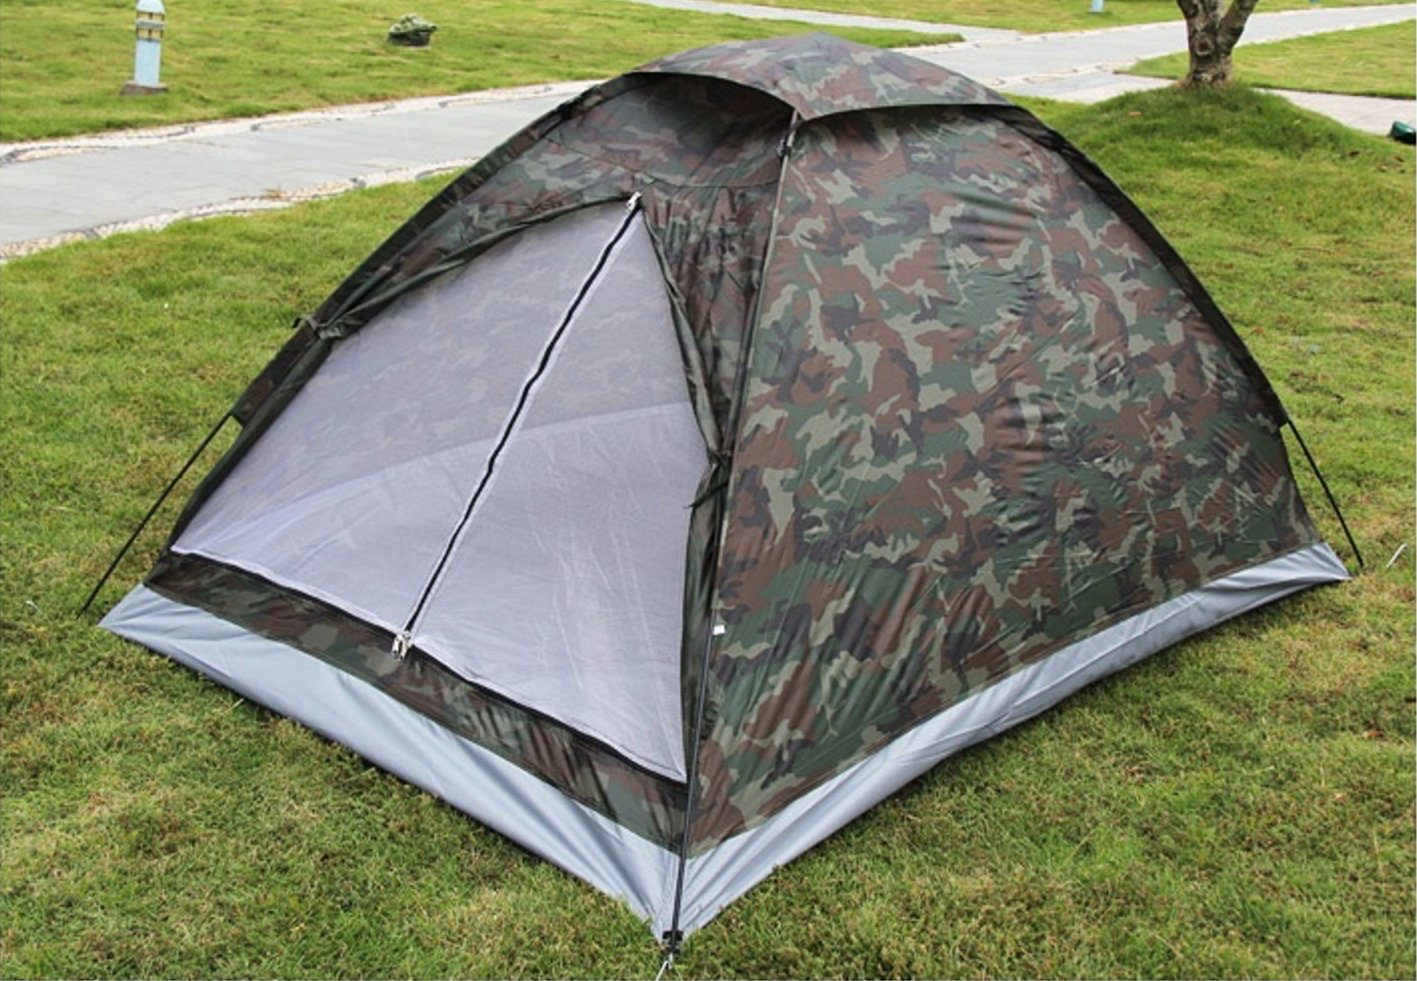 Amazon.com  LifeVC Ultralight C&ing Tent for 2 Person With Carry Bag Portable Outdoor Hiking Backpacking Tent Lightweight(ColorCamouflage)  Sports u0026 ... & Amazon.com : LifeVC Ultralight Camping Tent for 2 Person With Carry ...